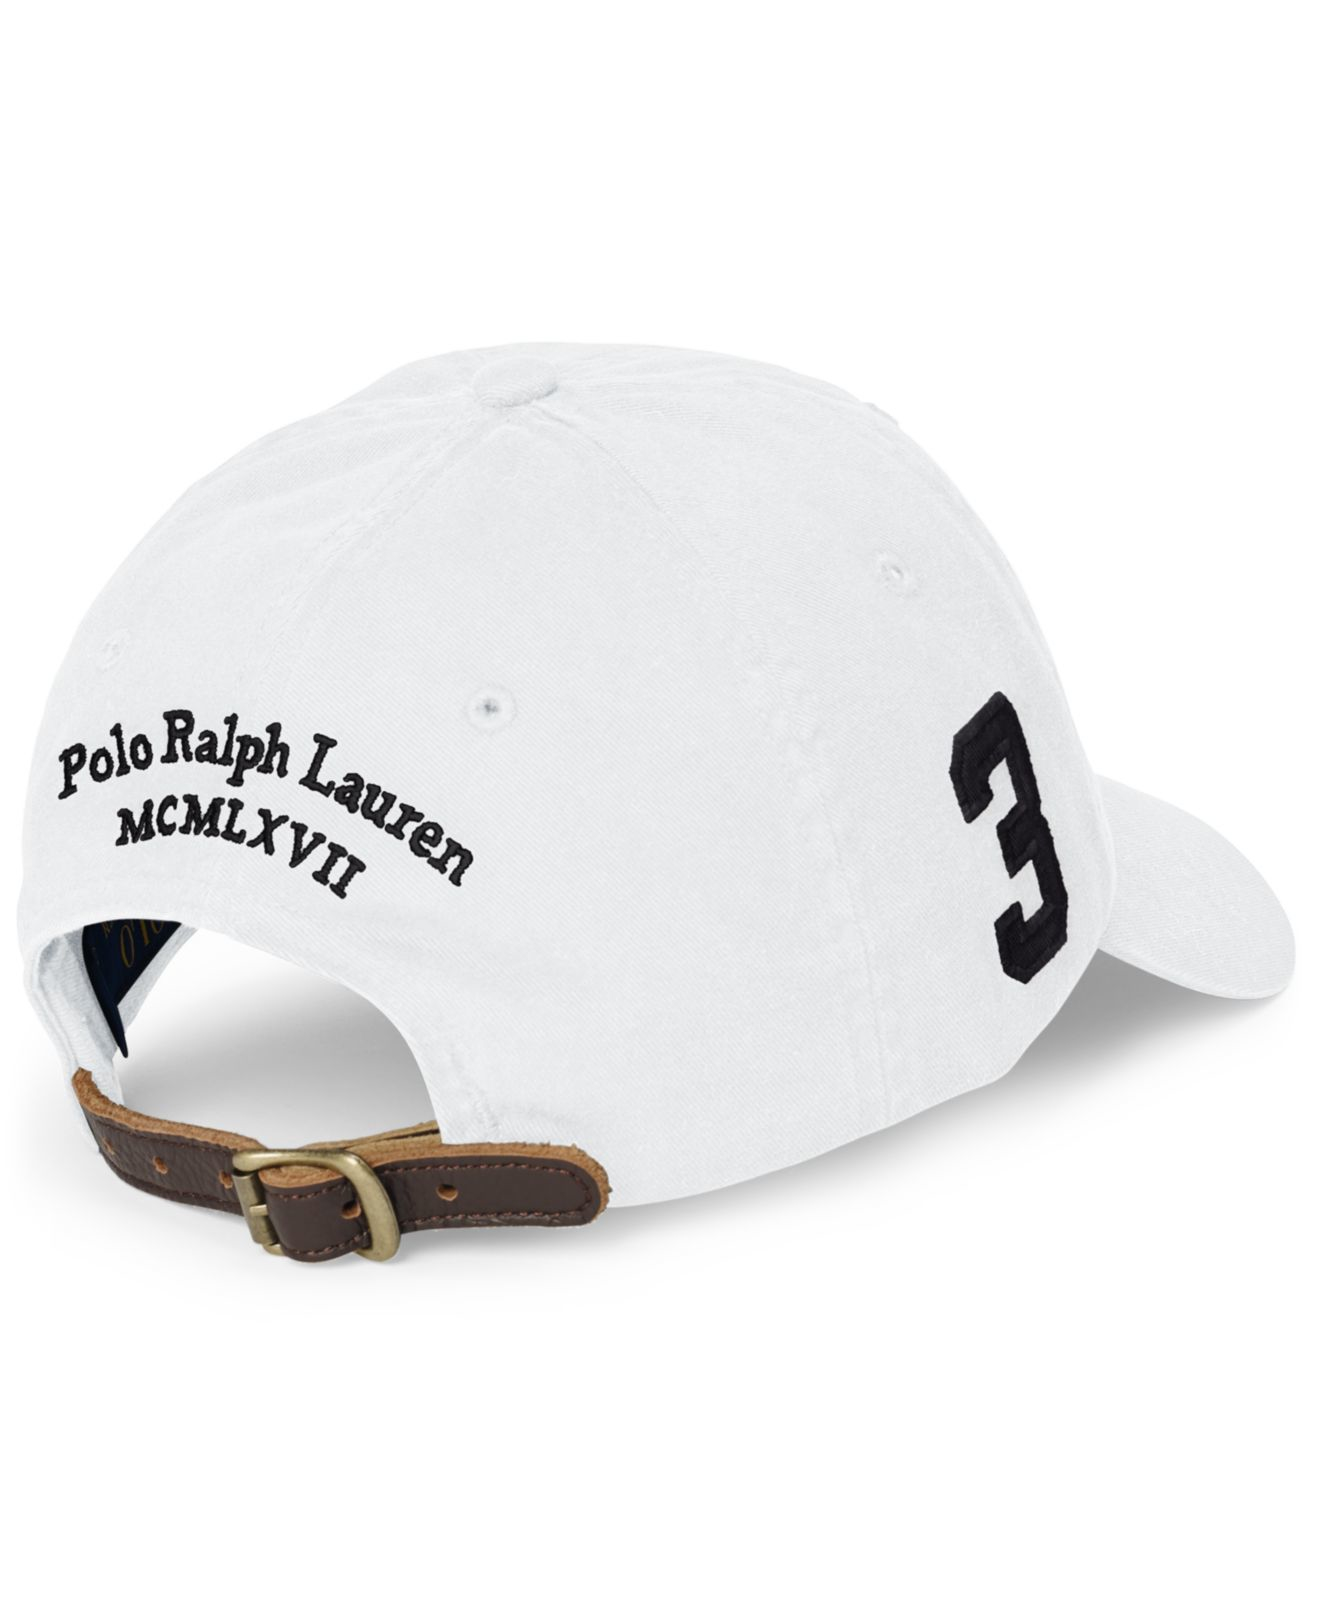 polo ralph lauren chino sports cap in white for men lyst. Black Bedroom Furniture Sets. Home Design Ideas